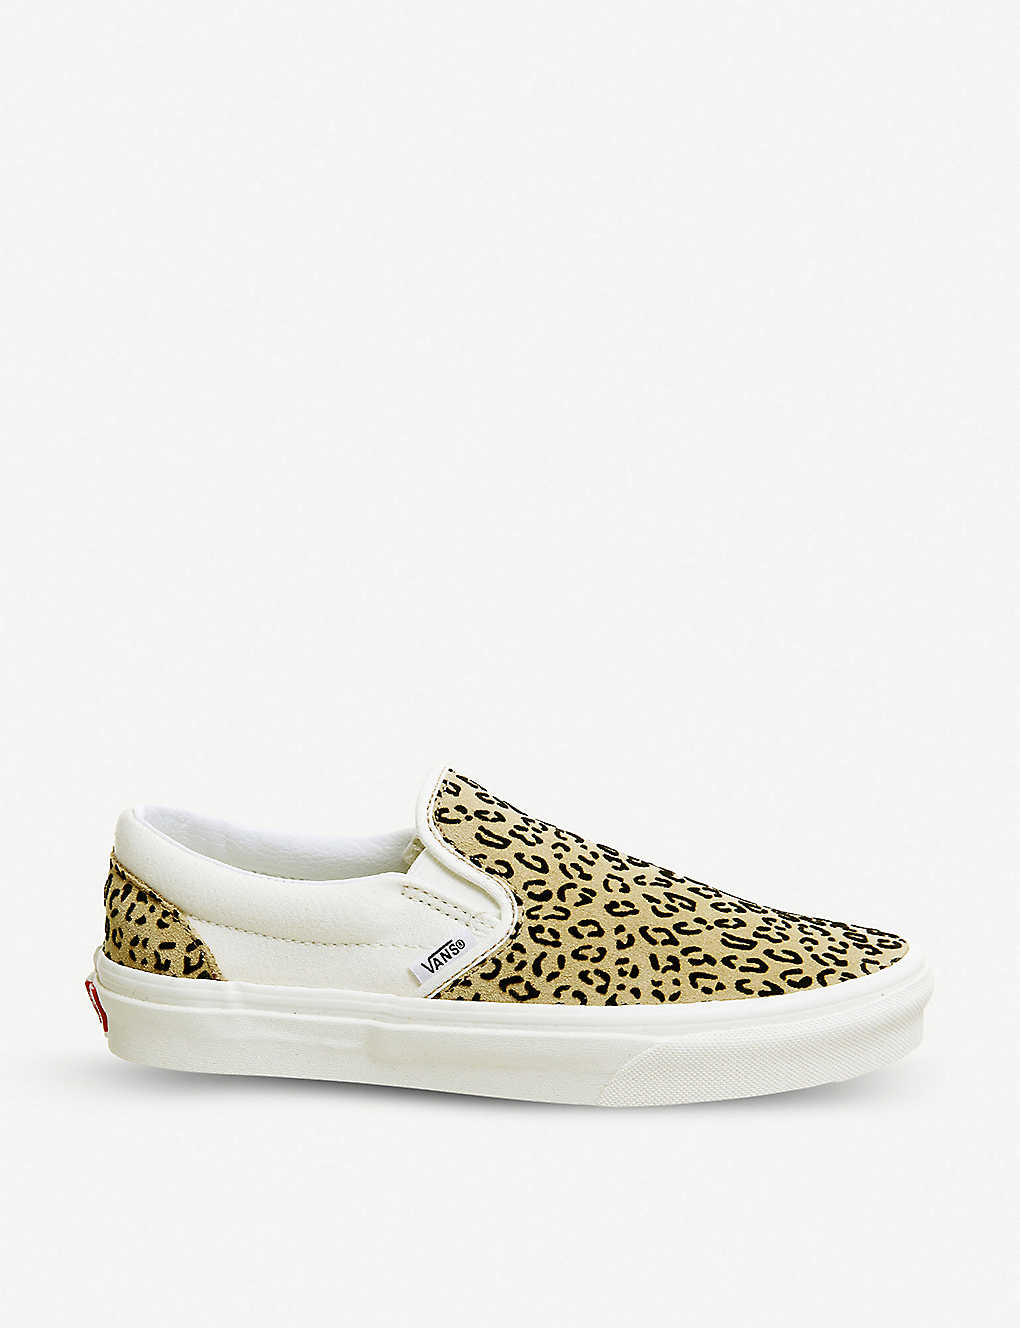 e5d87abf42c499 Classic leopard print canvas slip-on trainers - Leopard taffy ...